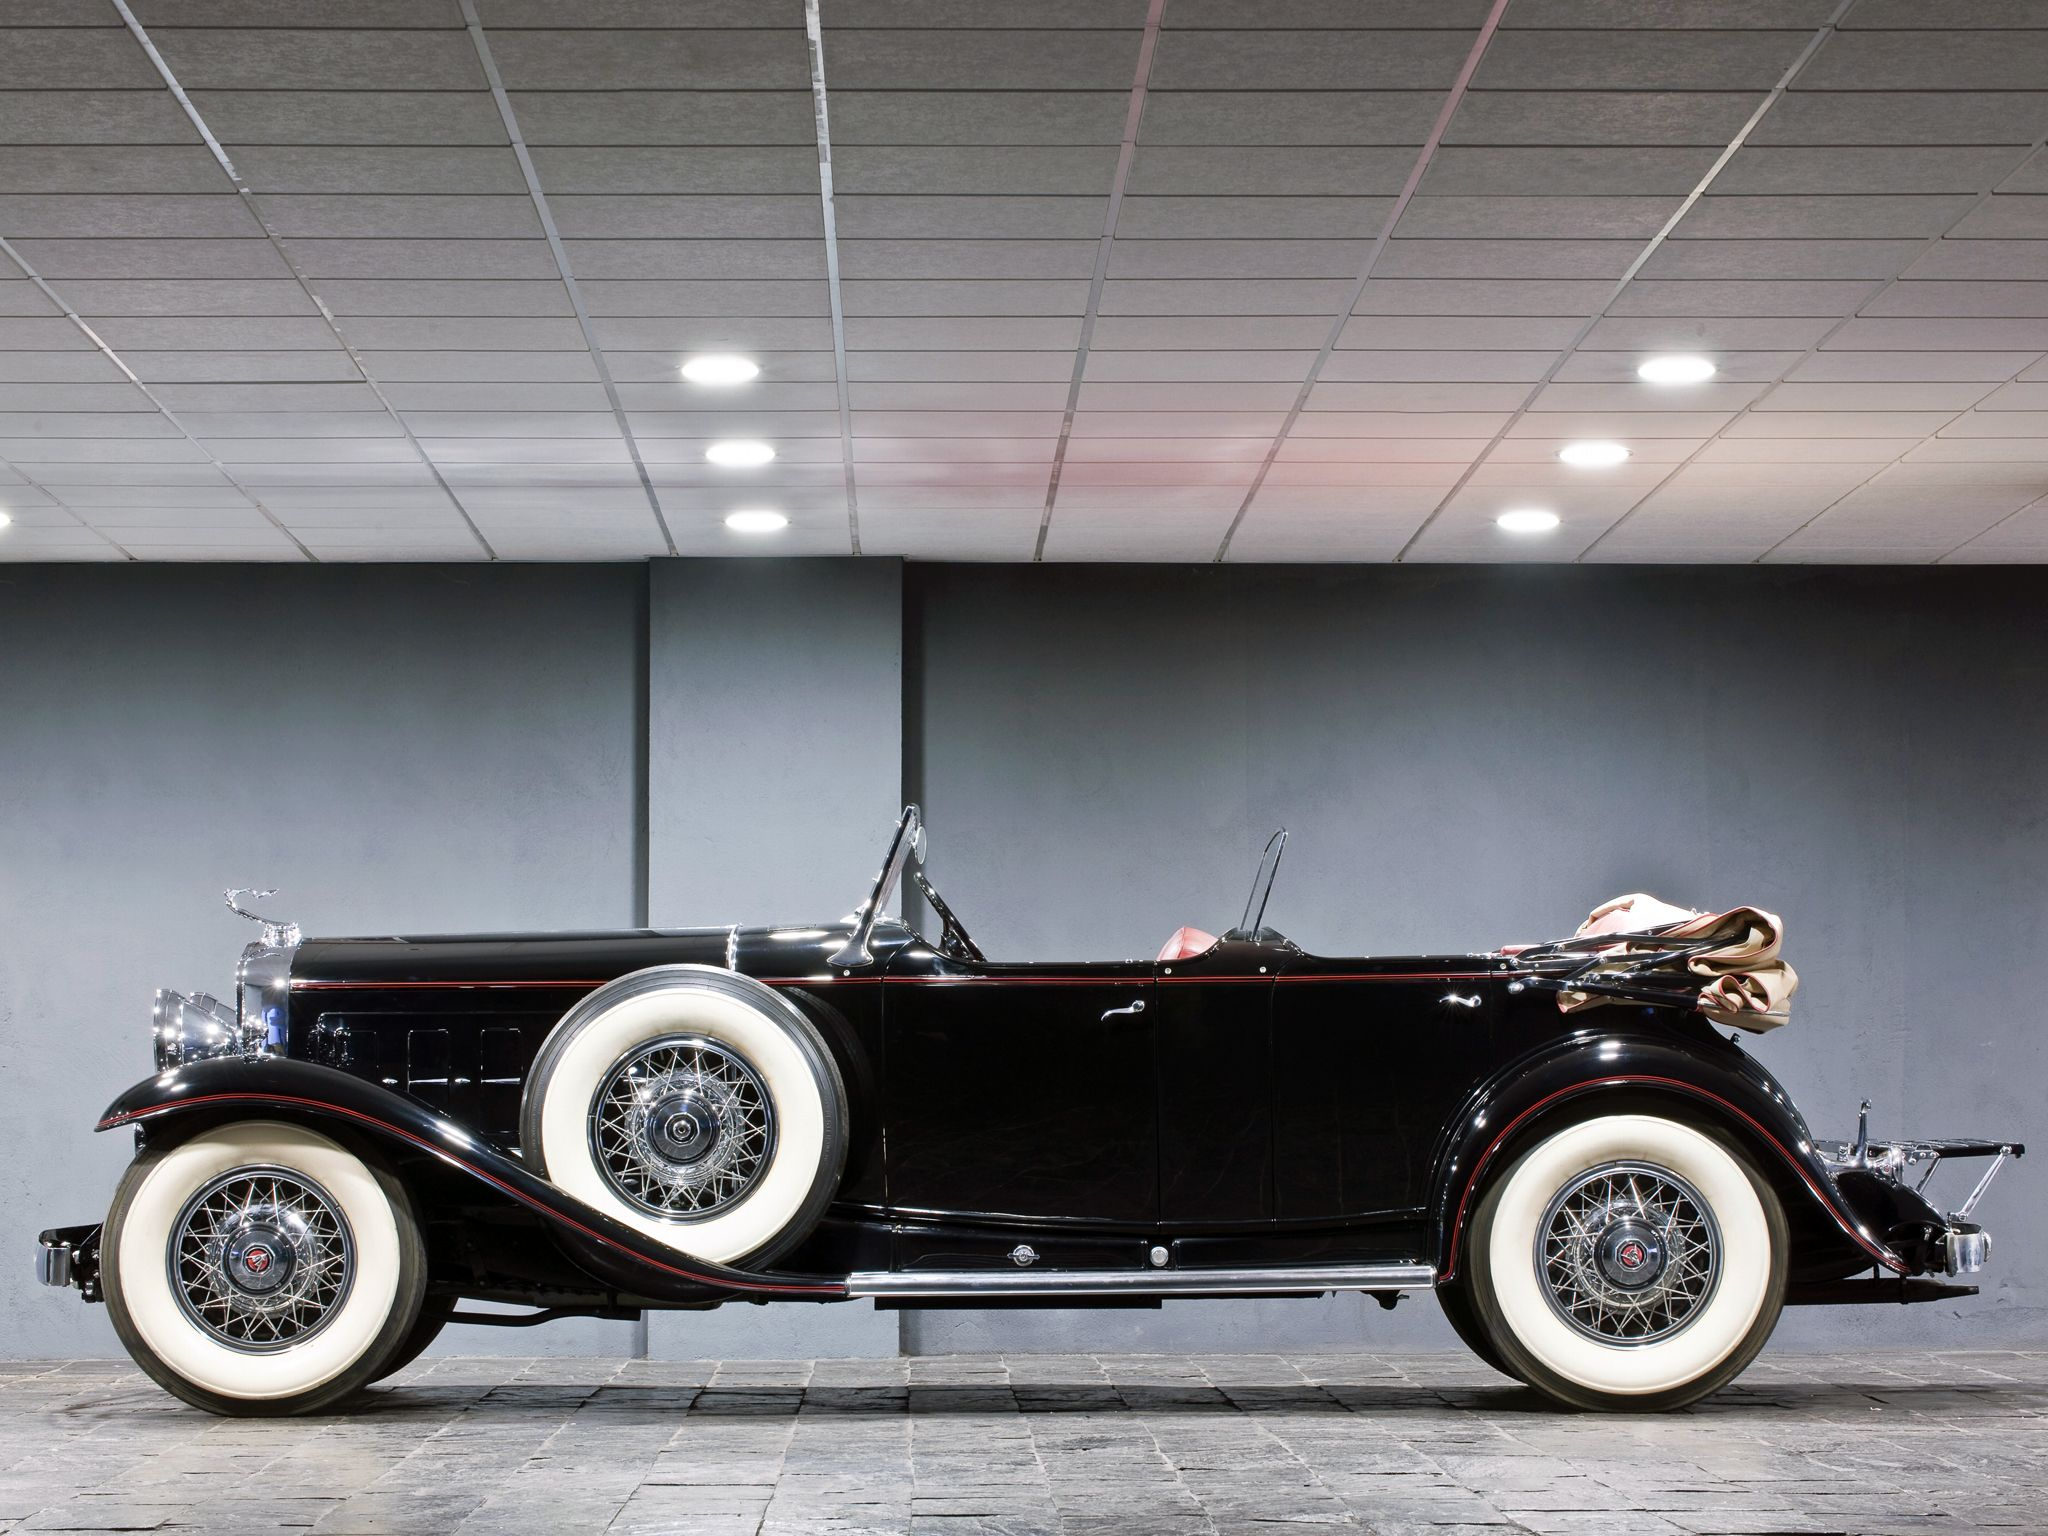 251 best american classic images on pinterest car antique cars and classic